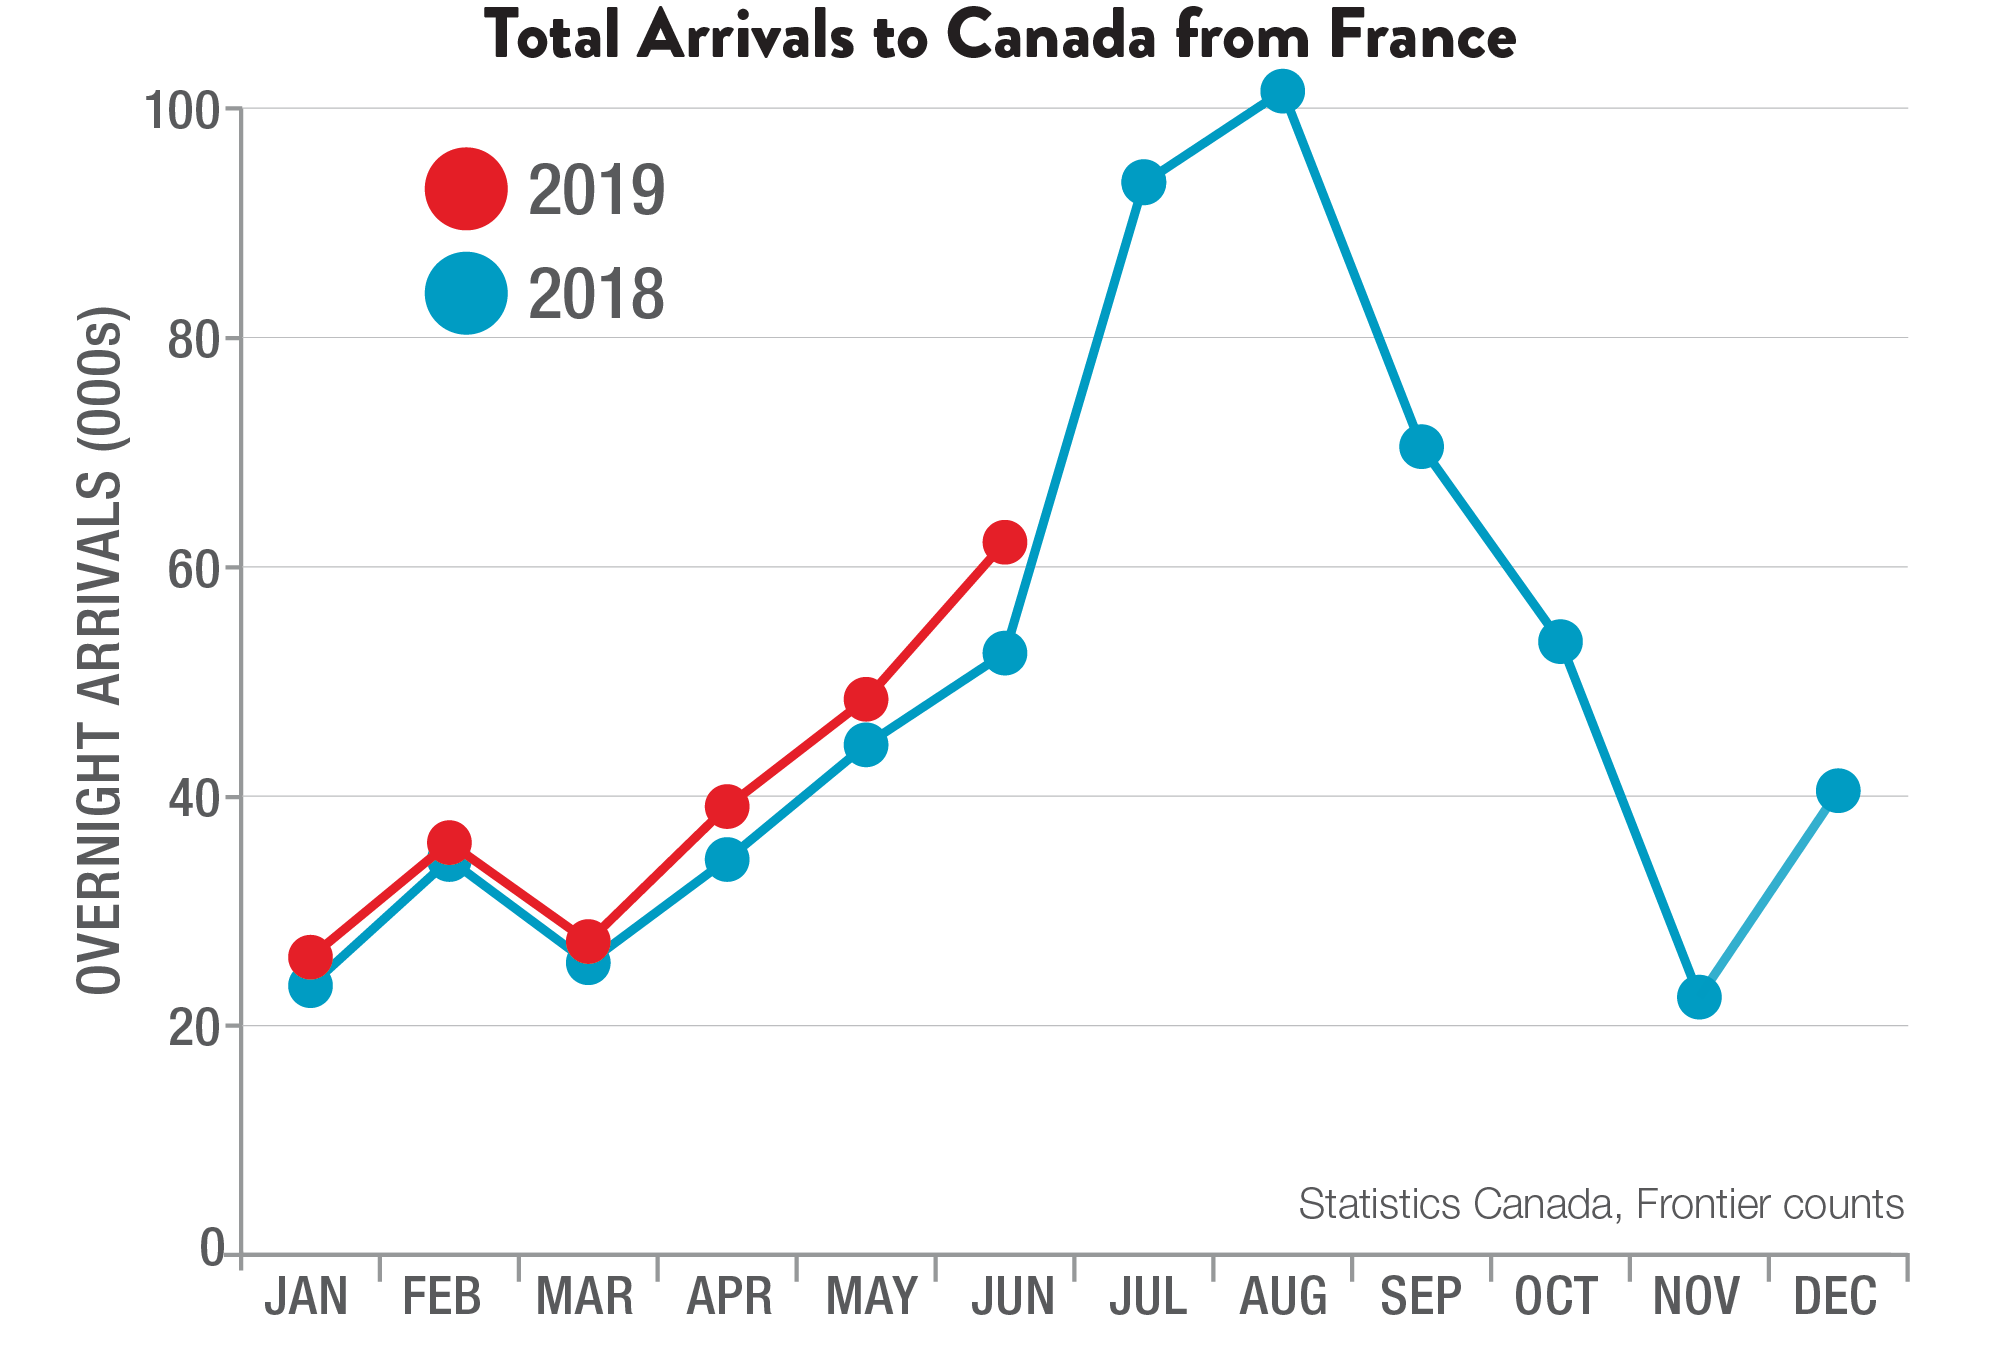 Total Arrivals to Canada from France